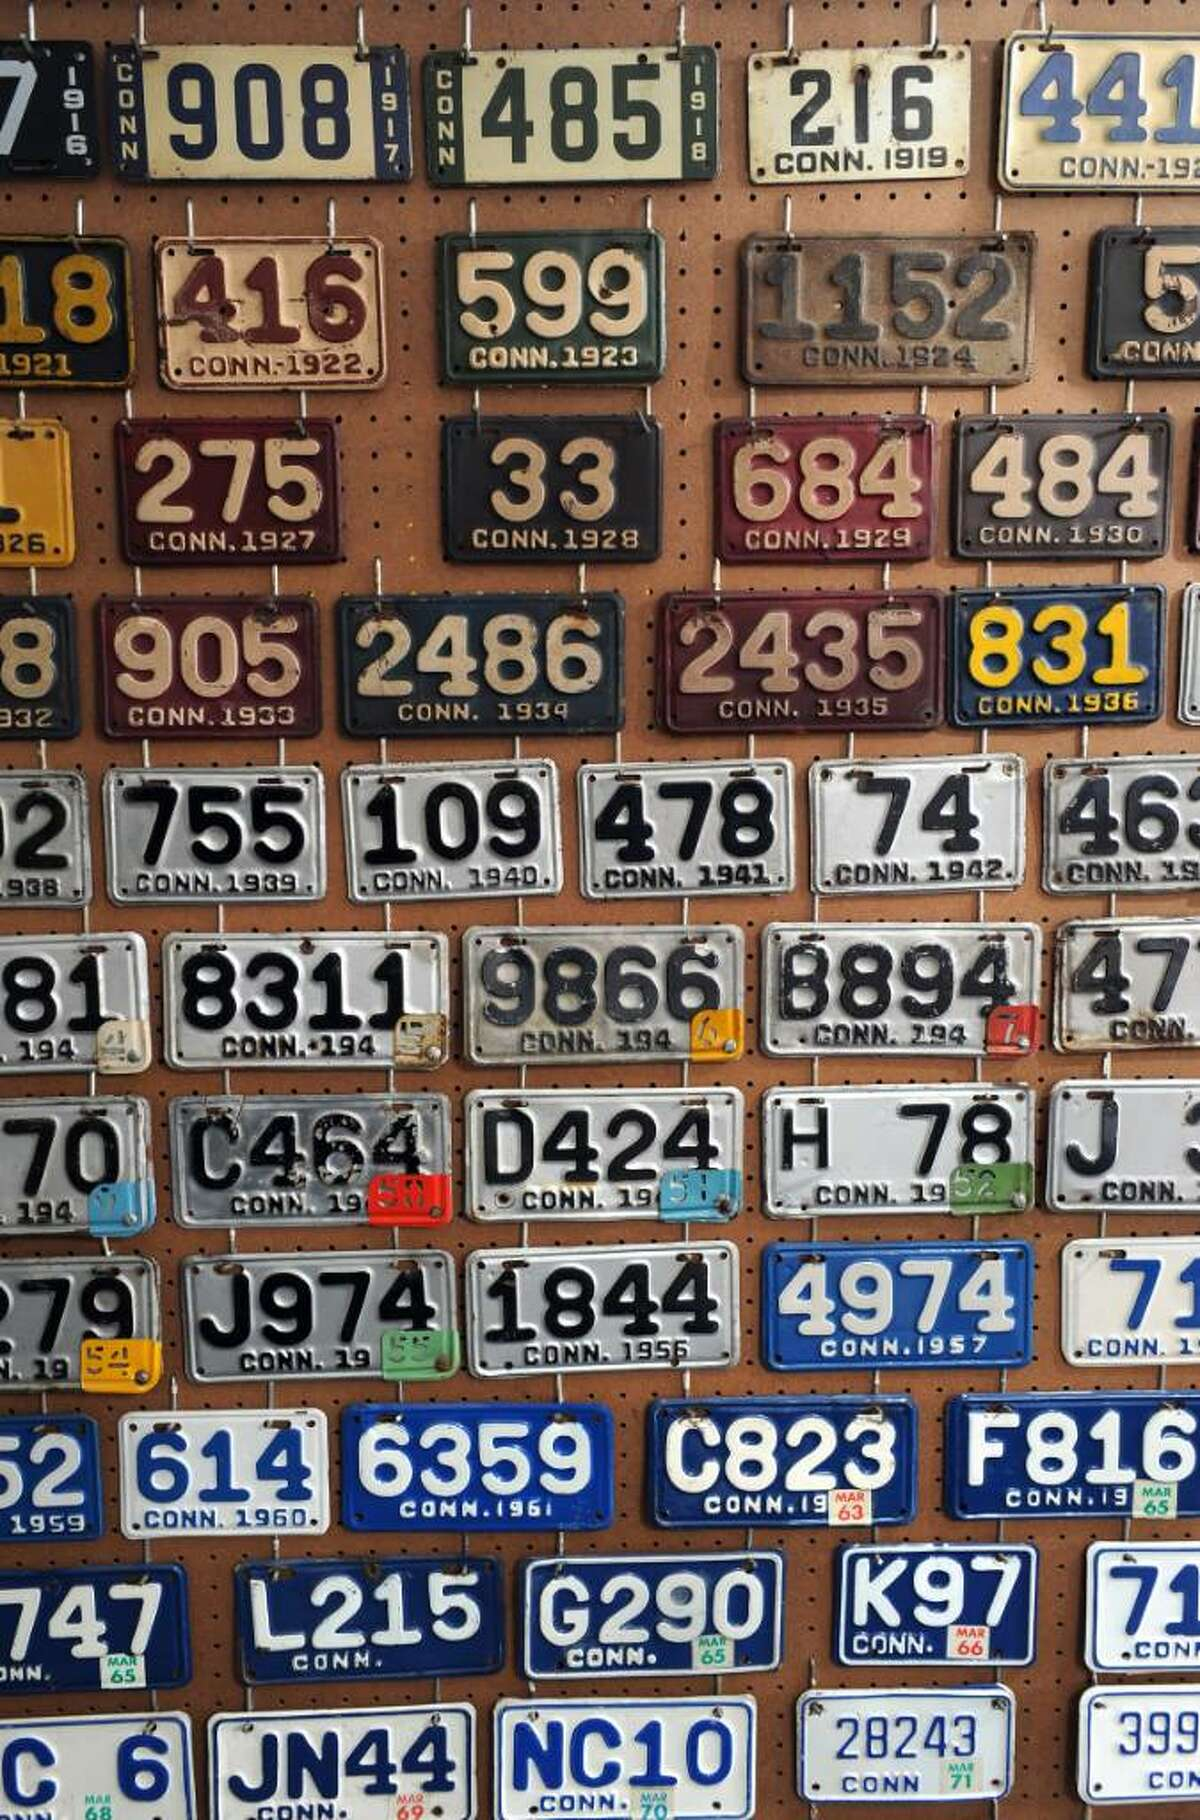 Connecticut motorcycle license plates spanning from 1912 to the present on display at David Kuehn's Milford home. Kuehn's collection of vehicle license plates numbers over 2000.